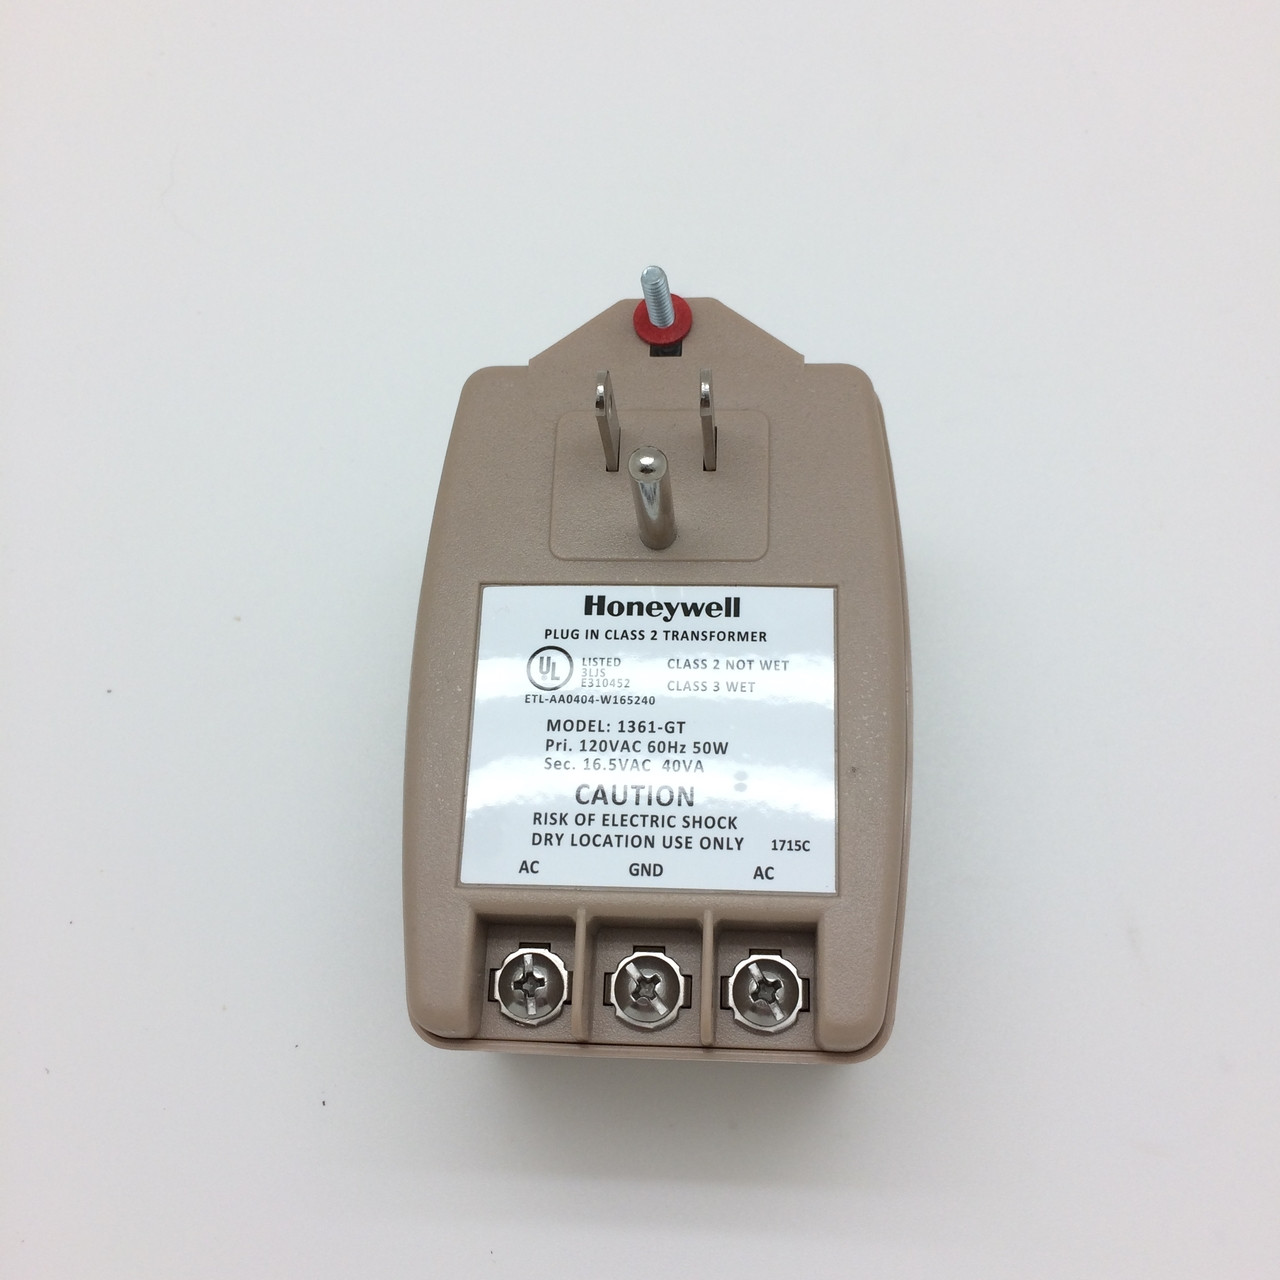 small resolution of honeywell ademco 1361 gt transformer 16 5v 40va vista 20p control automation gt home a v distribution gt new house wiring